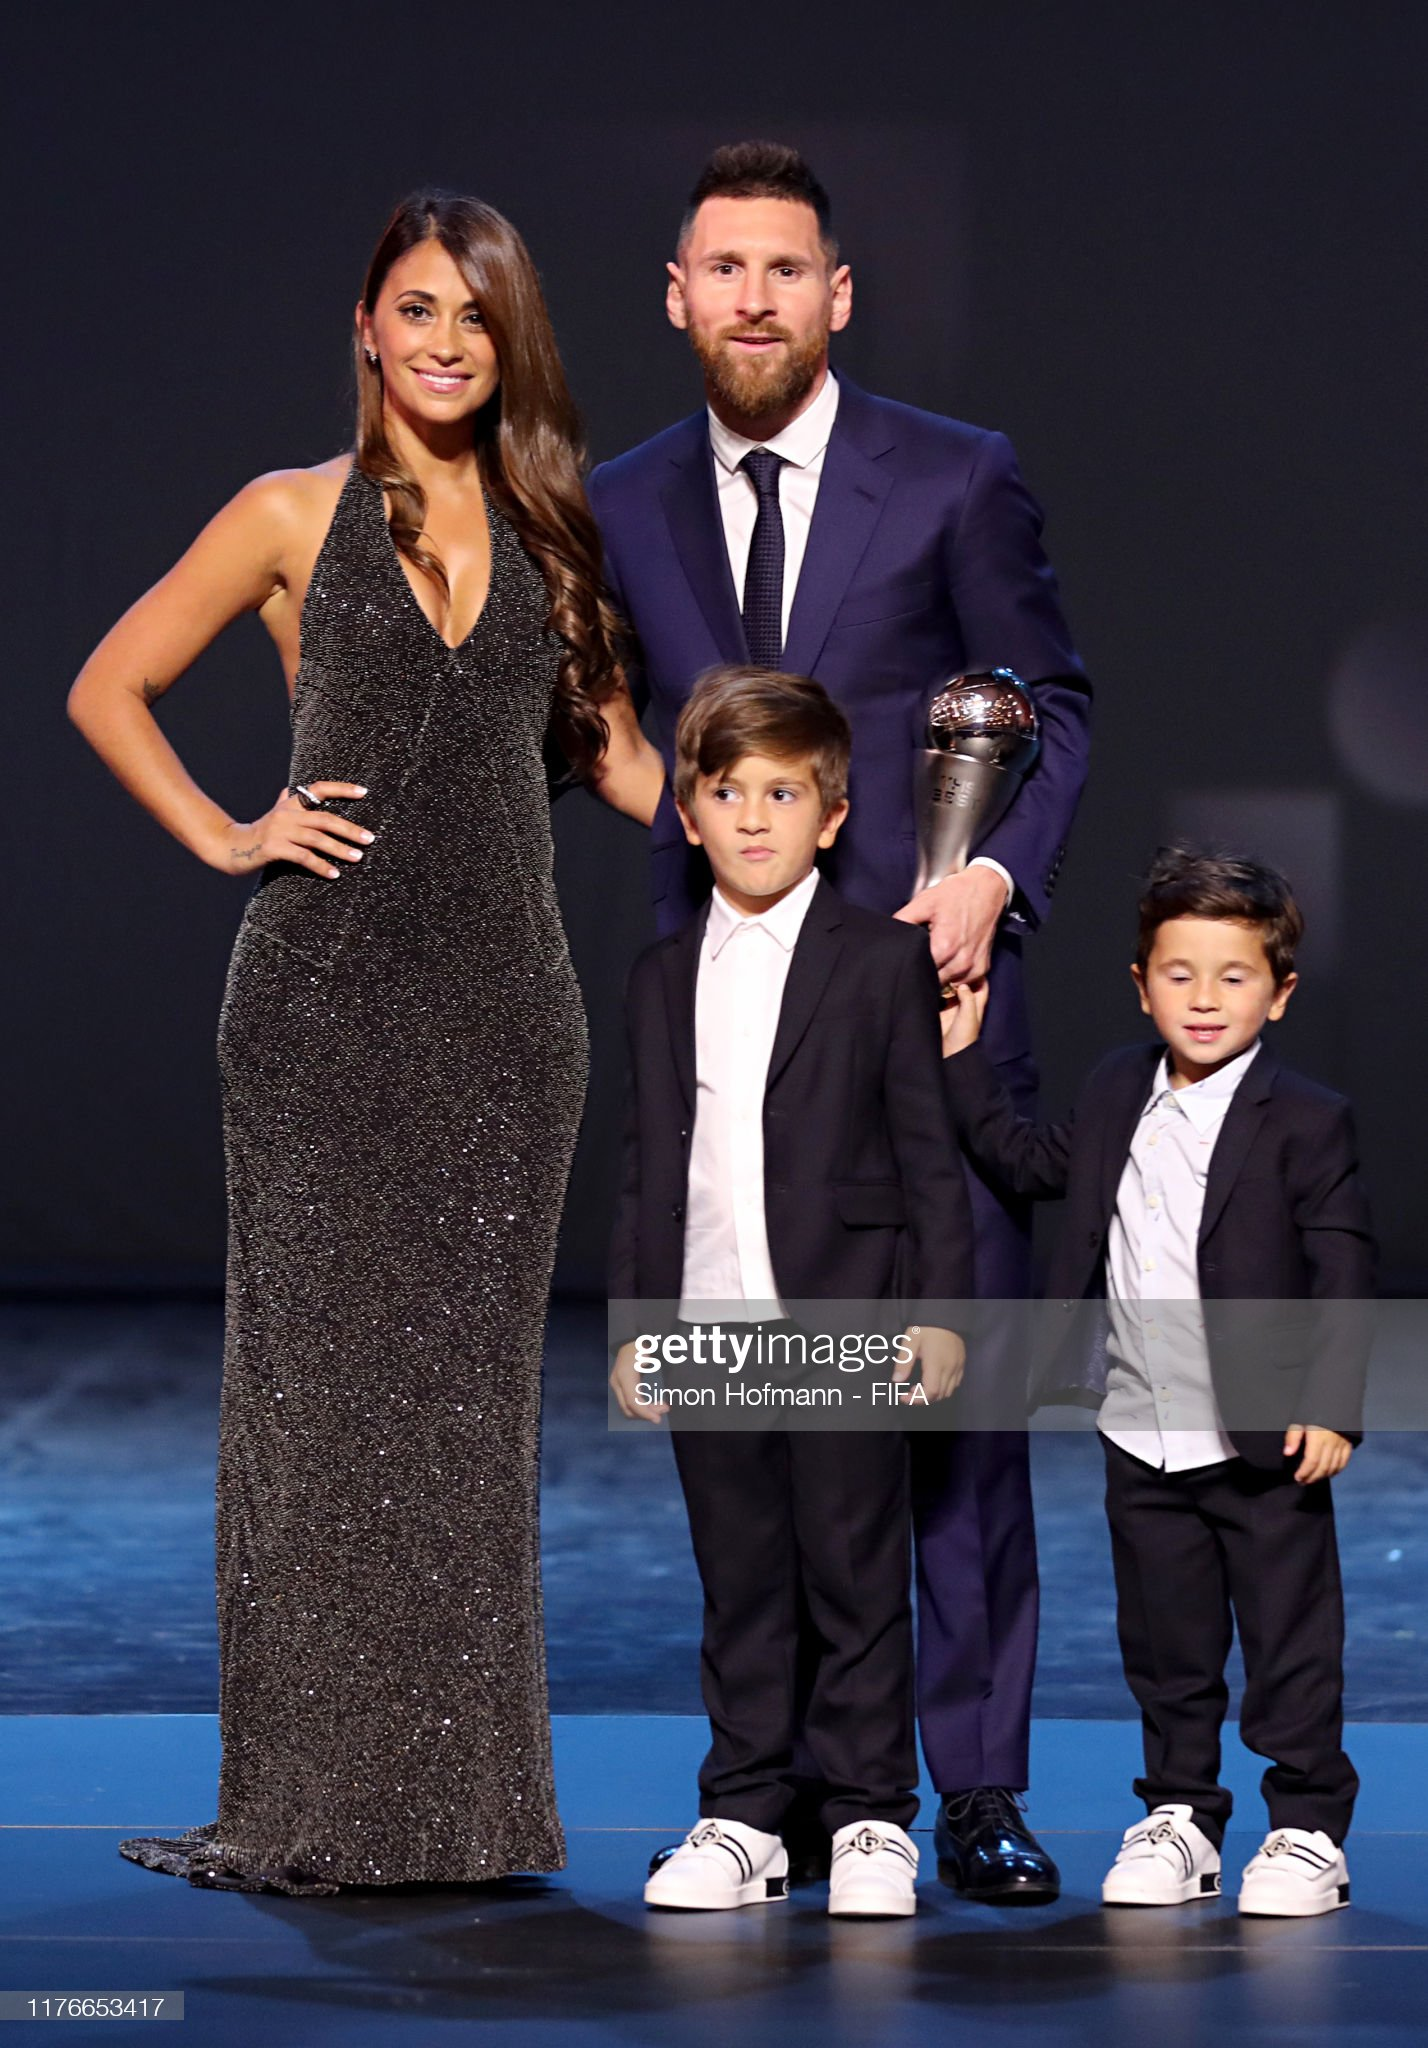 The Best FIFA Football Awards 2019 The-best-fifa-mens-player-award-winner-lionel-messi-of-fc-barcelona-picture-id1176653417?s=2048x2048